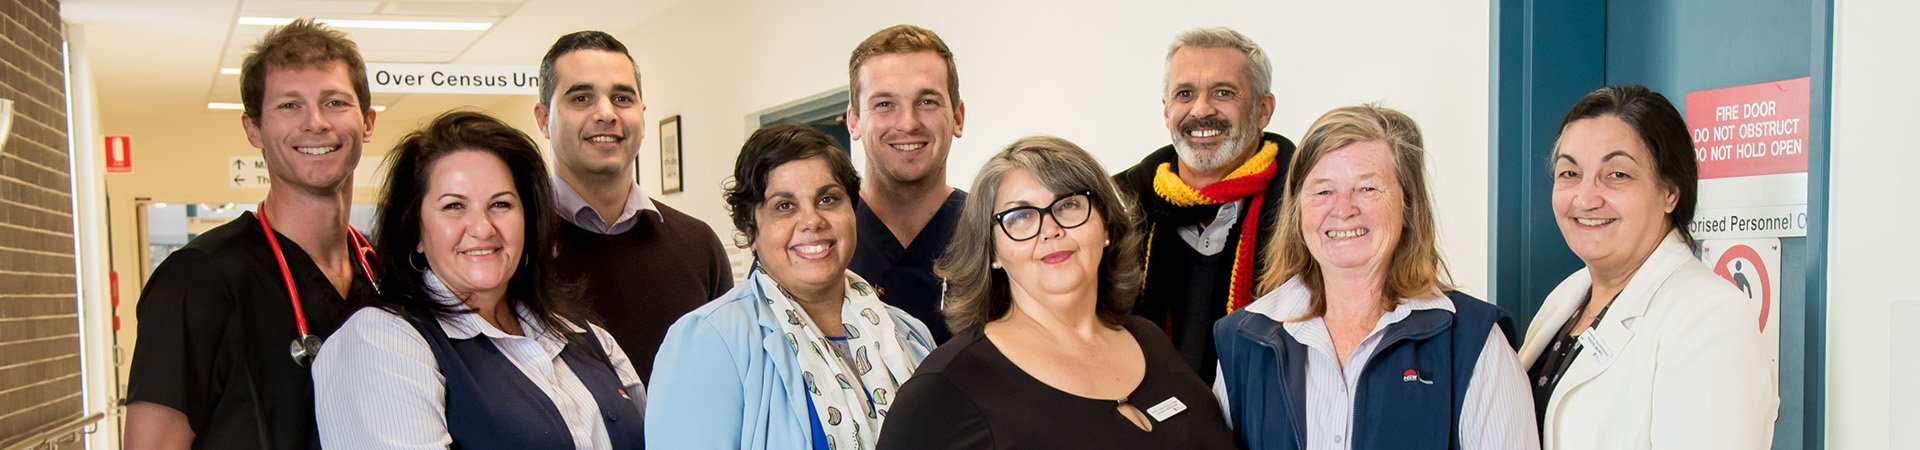 Aboriginal Health Staff in corridor at Shoalhaven Hospital